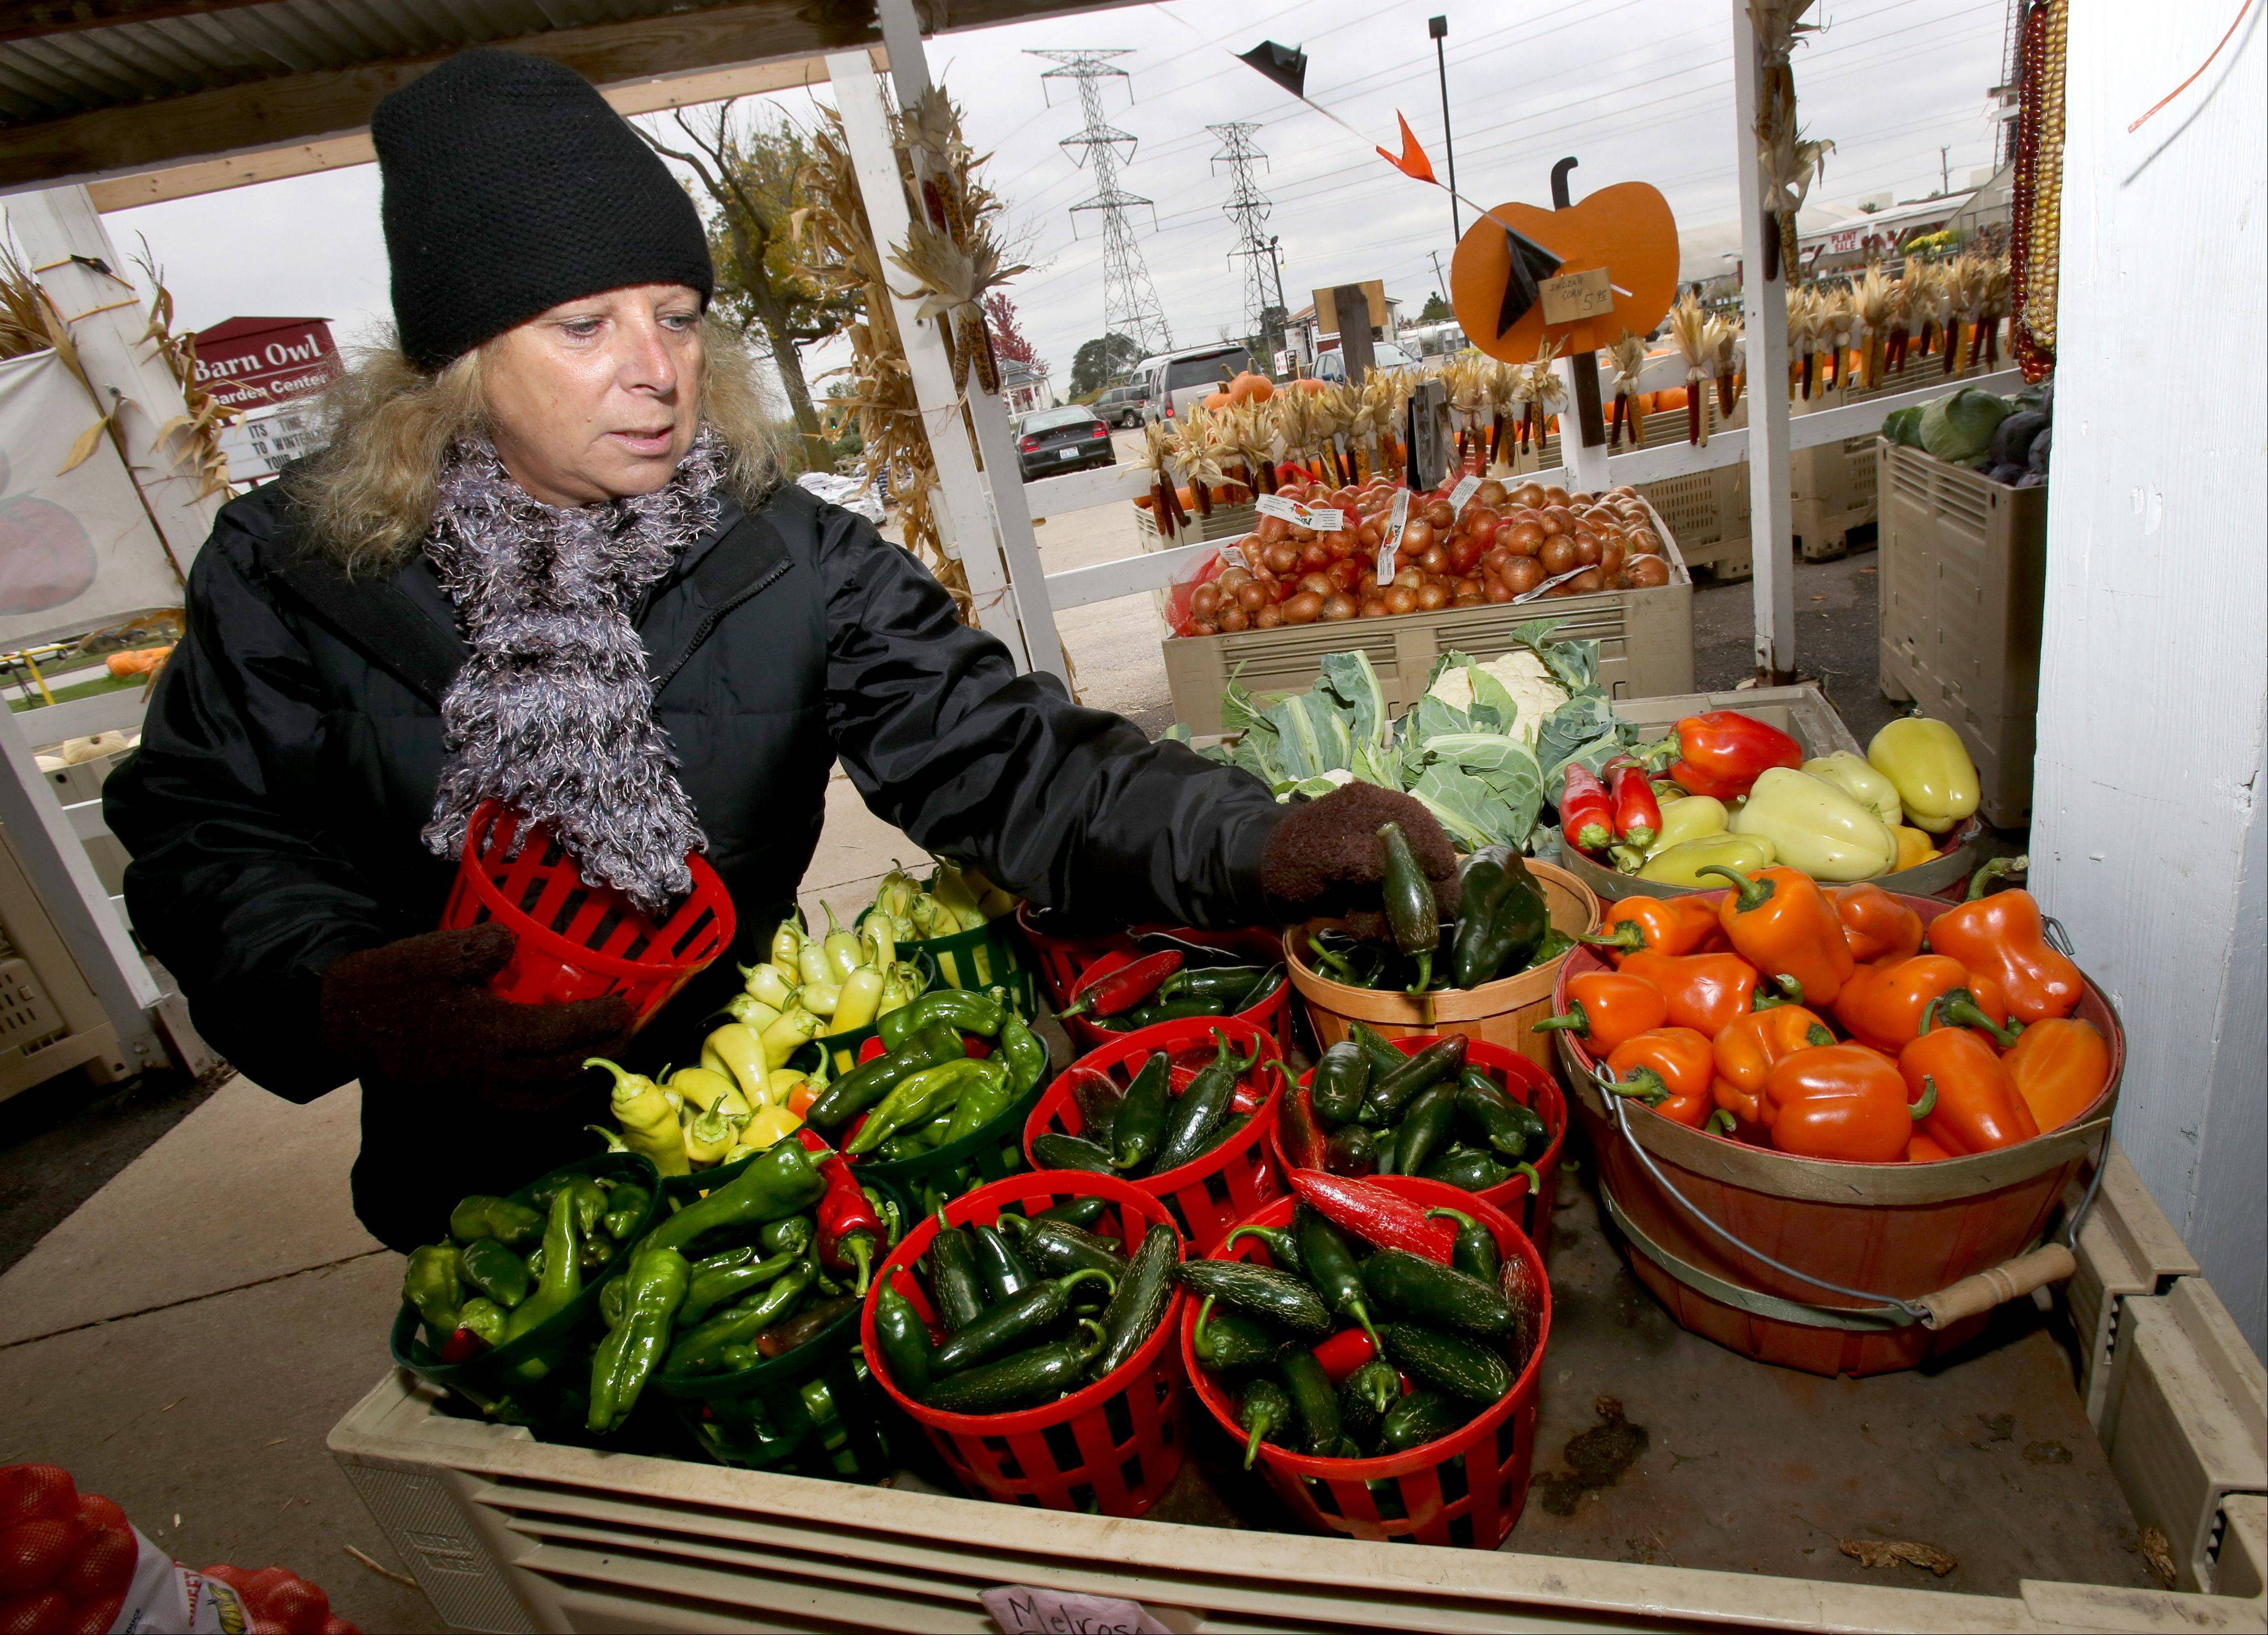 �You couldn�t get it any fresher unless you grew it yourself,� said Donna Smits, of The Farm in Carol Stream. The family owned business is celebrating its 50th year selling fresh seasonal produce in DuPage County.